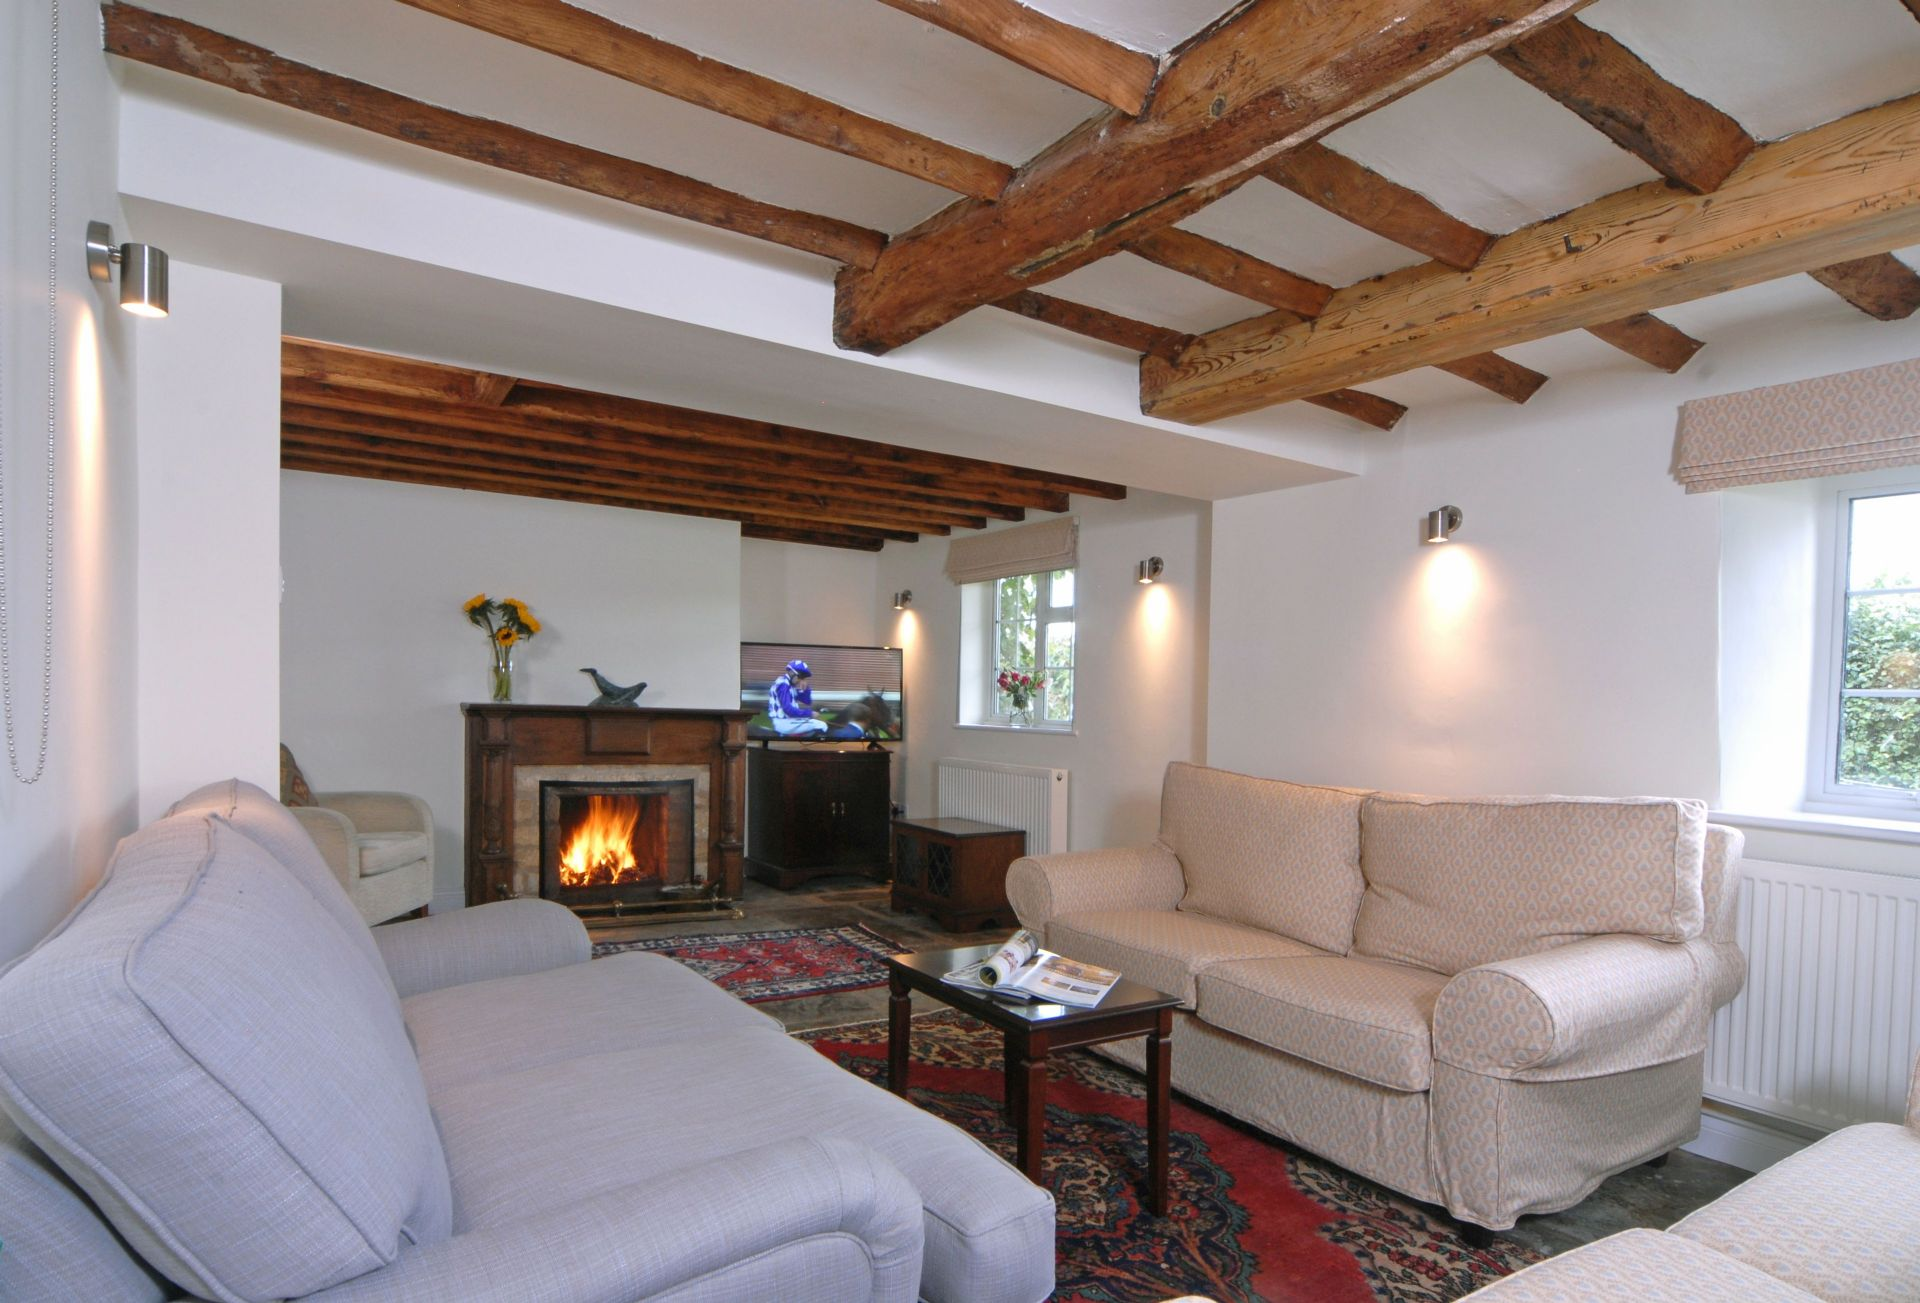 Hiron's Piece Ground floor: Sitting room with original flagstone flooring and an open fireplace